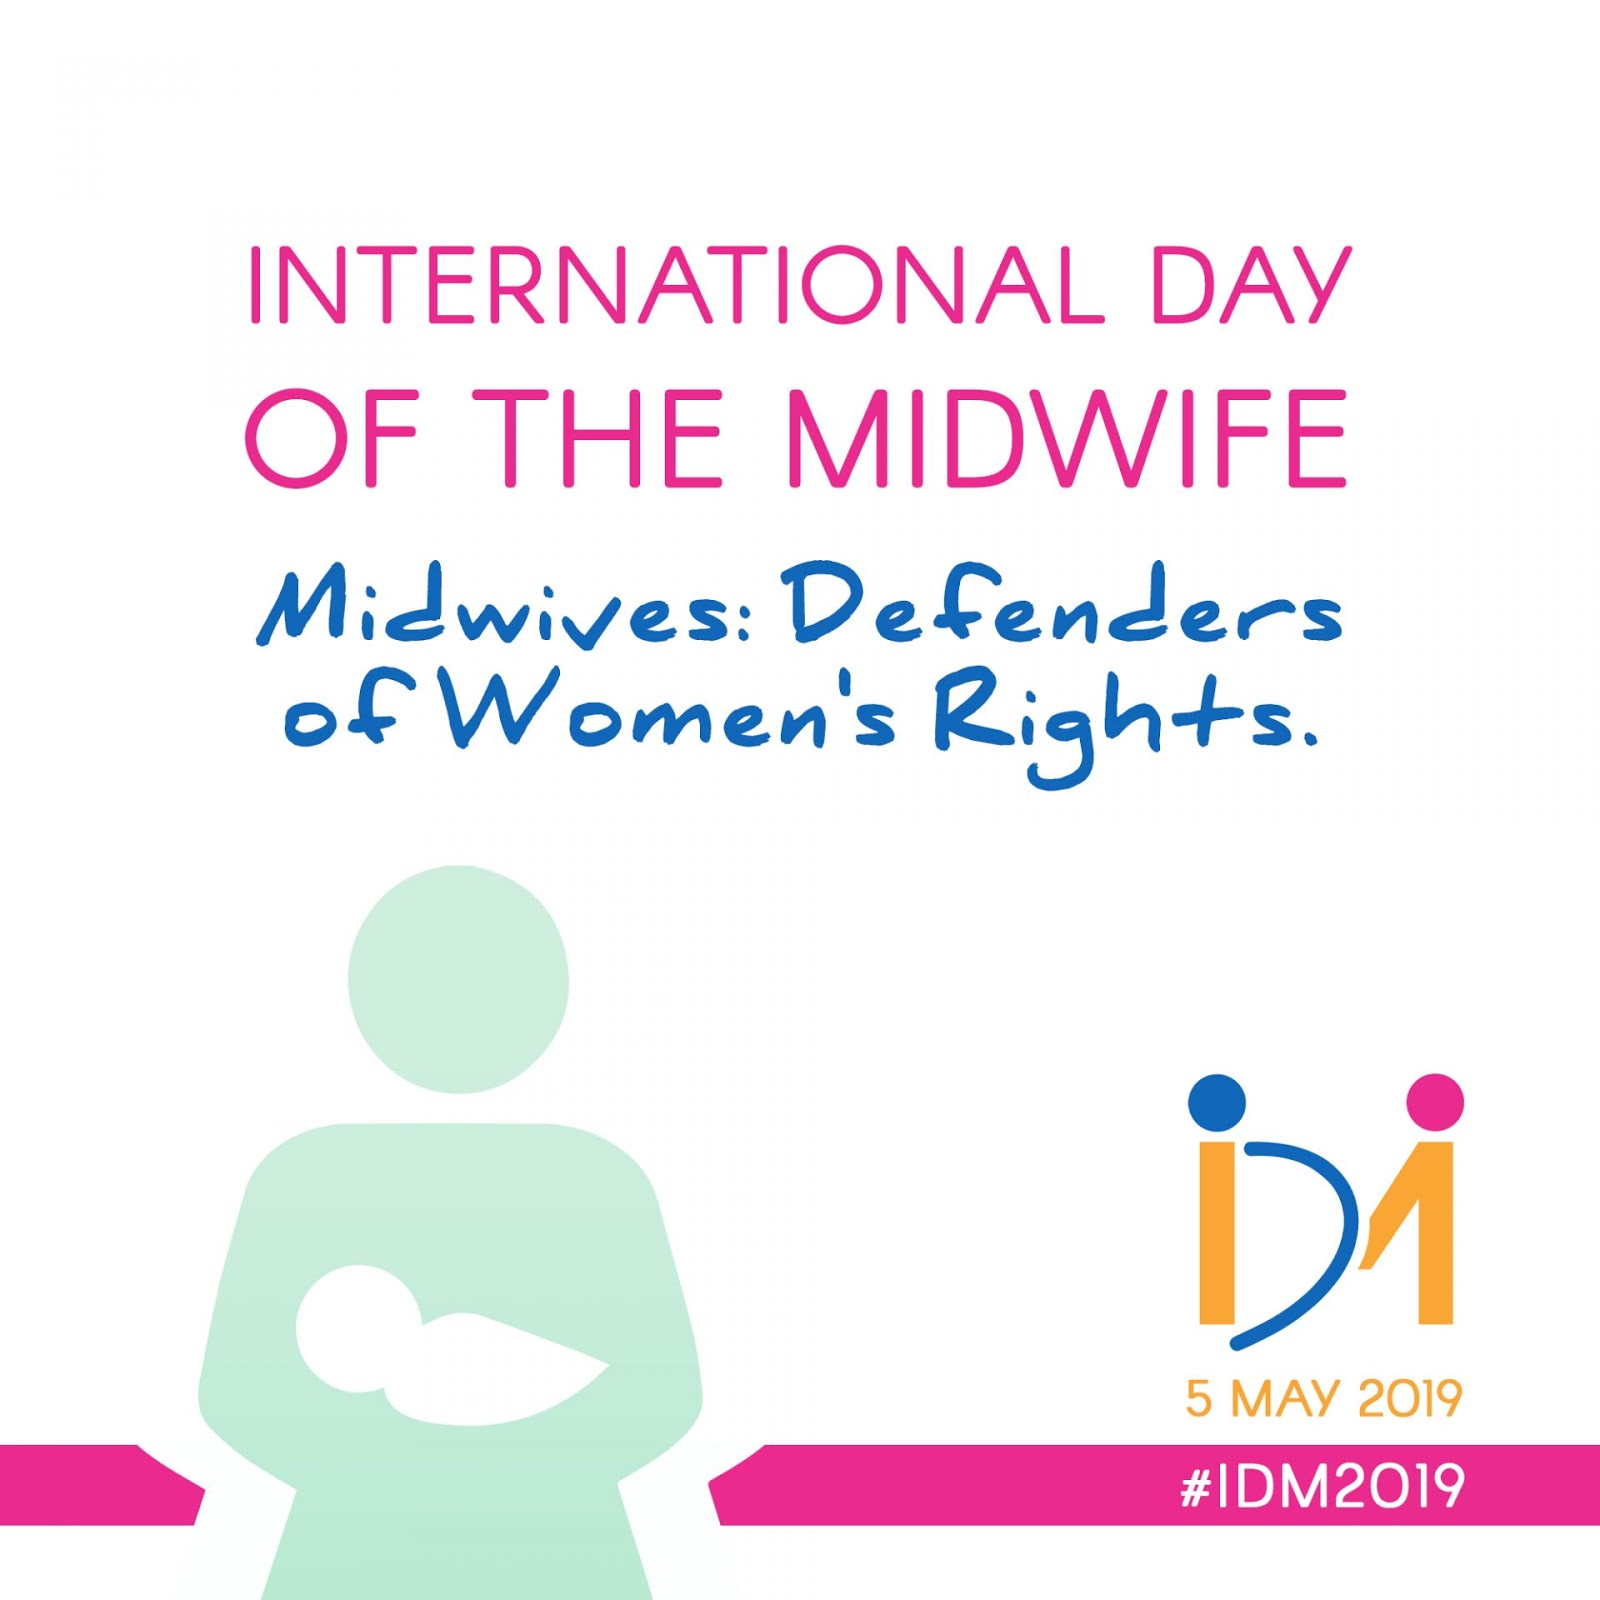 Midwives_Defenders_of_Women_Rights